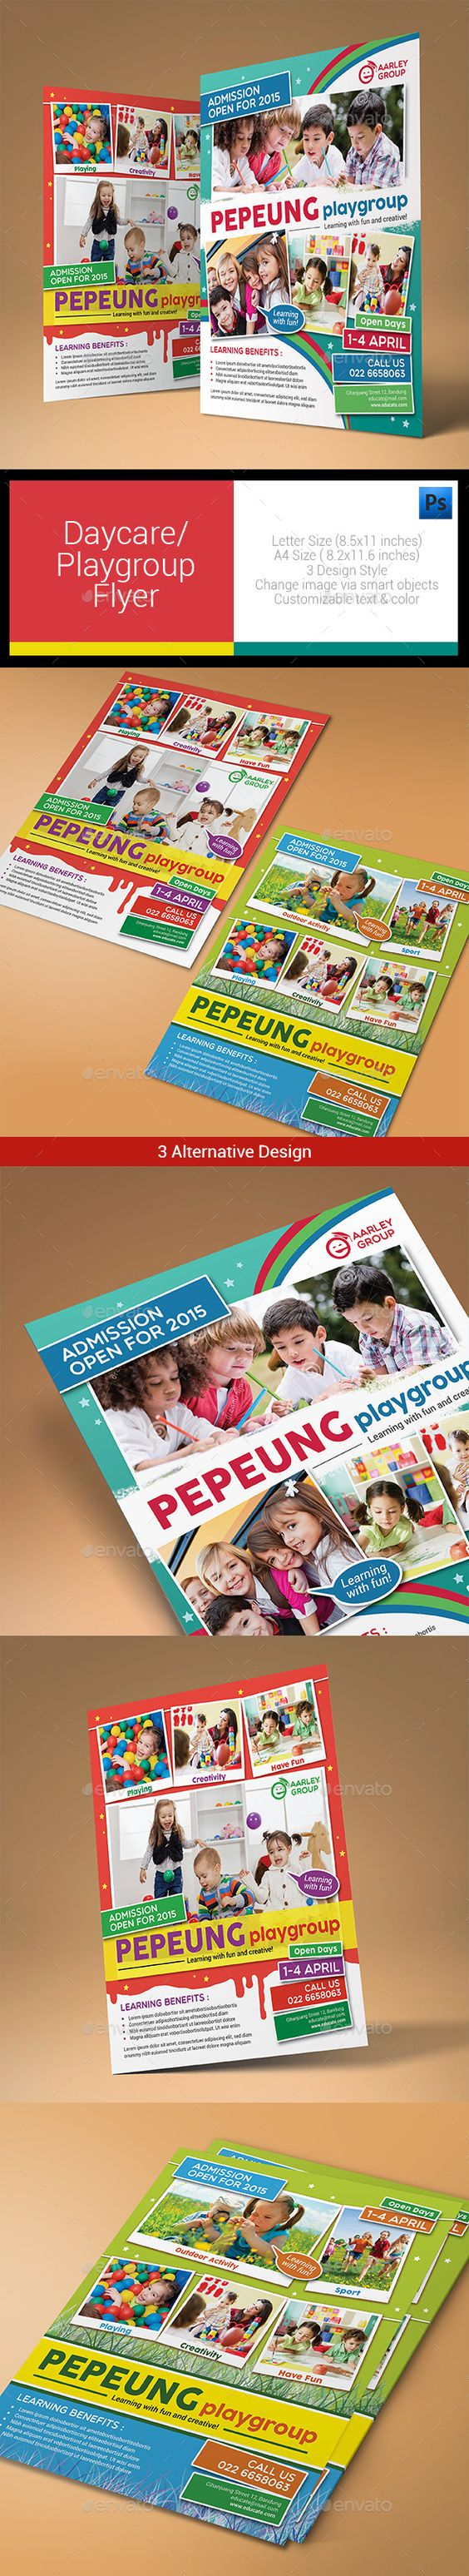 daycare playgroup flyer flyer template daycares and flyers daycare playgroup flyer photoshop psd fun magazine ad available here rarr